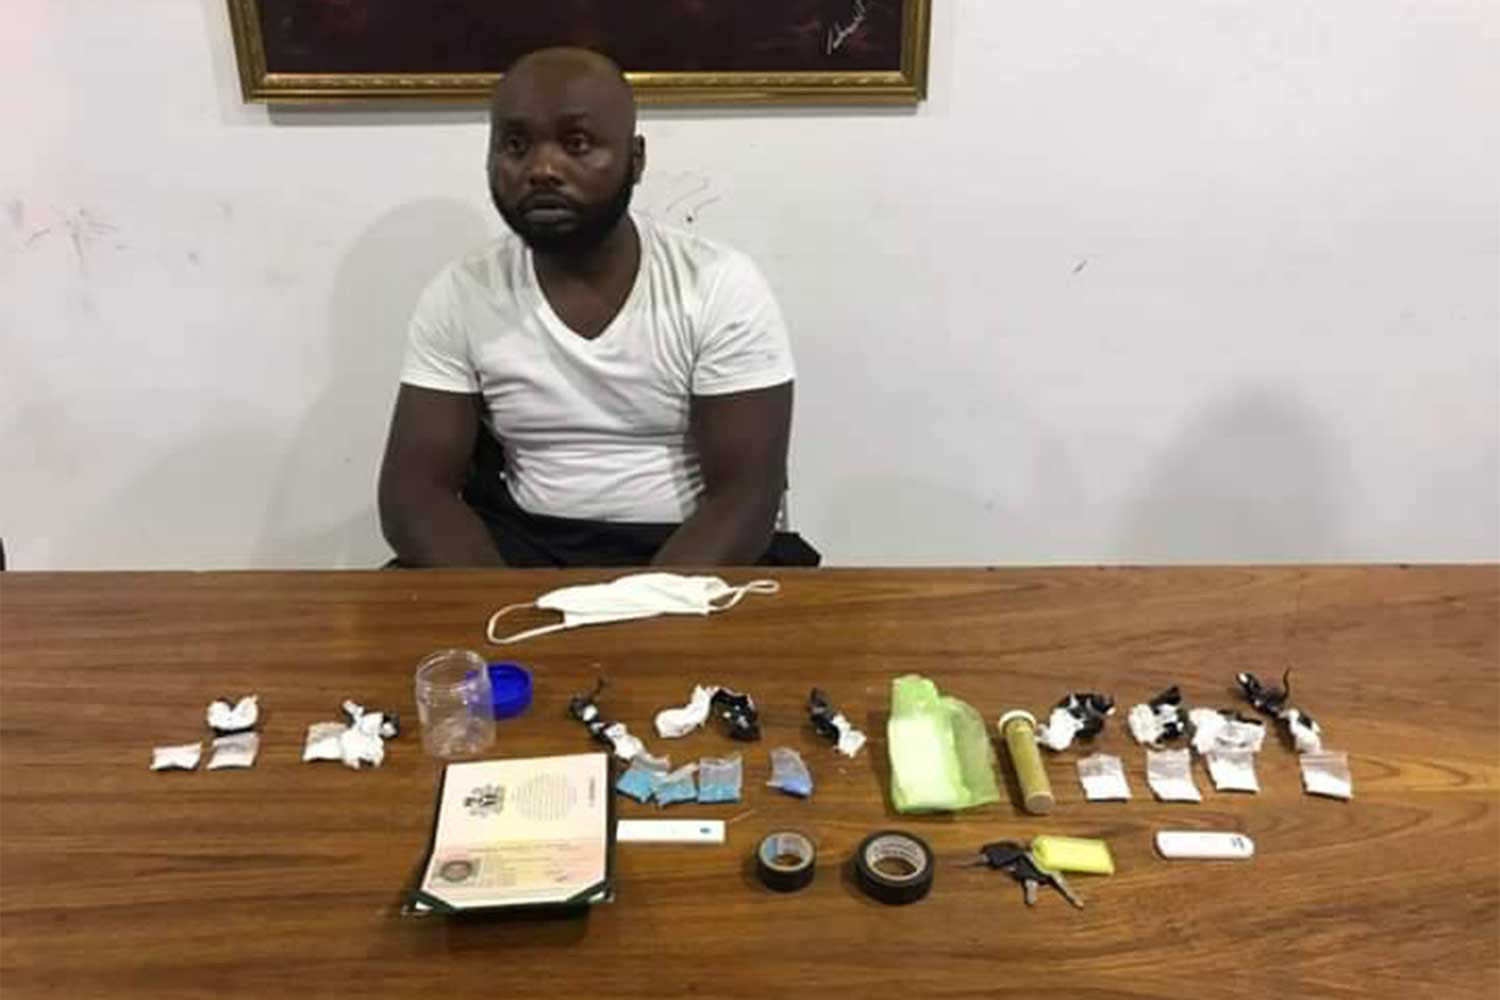 26-year-old Nigerian man arrested with drugs in Thailand